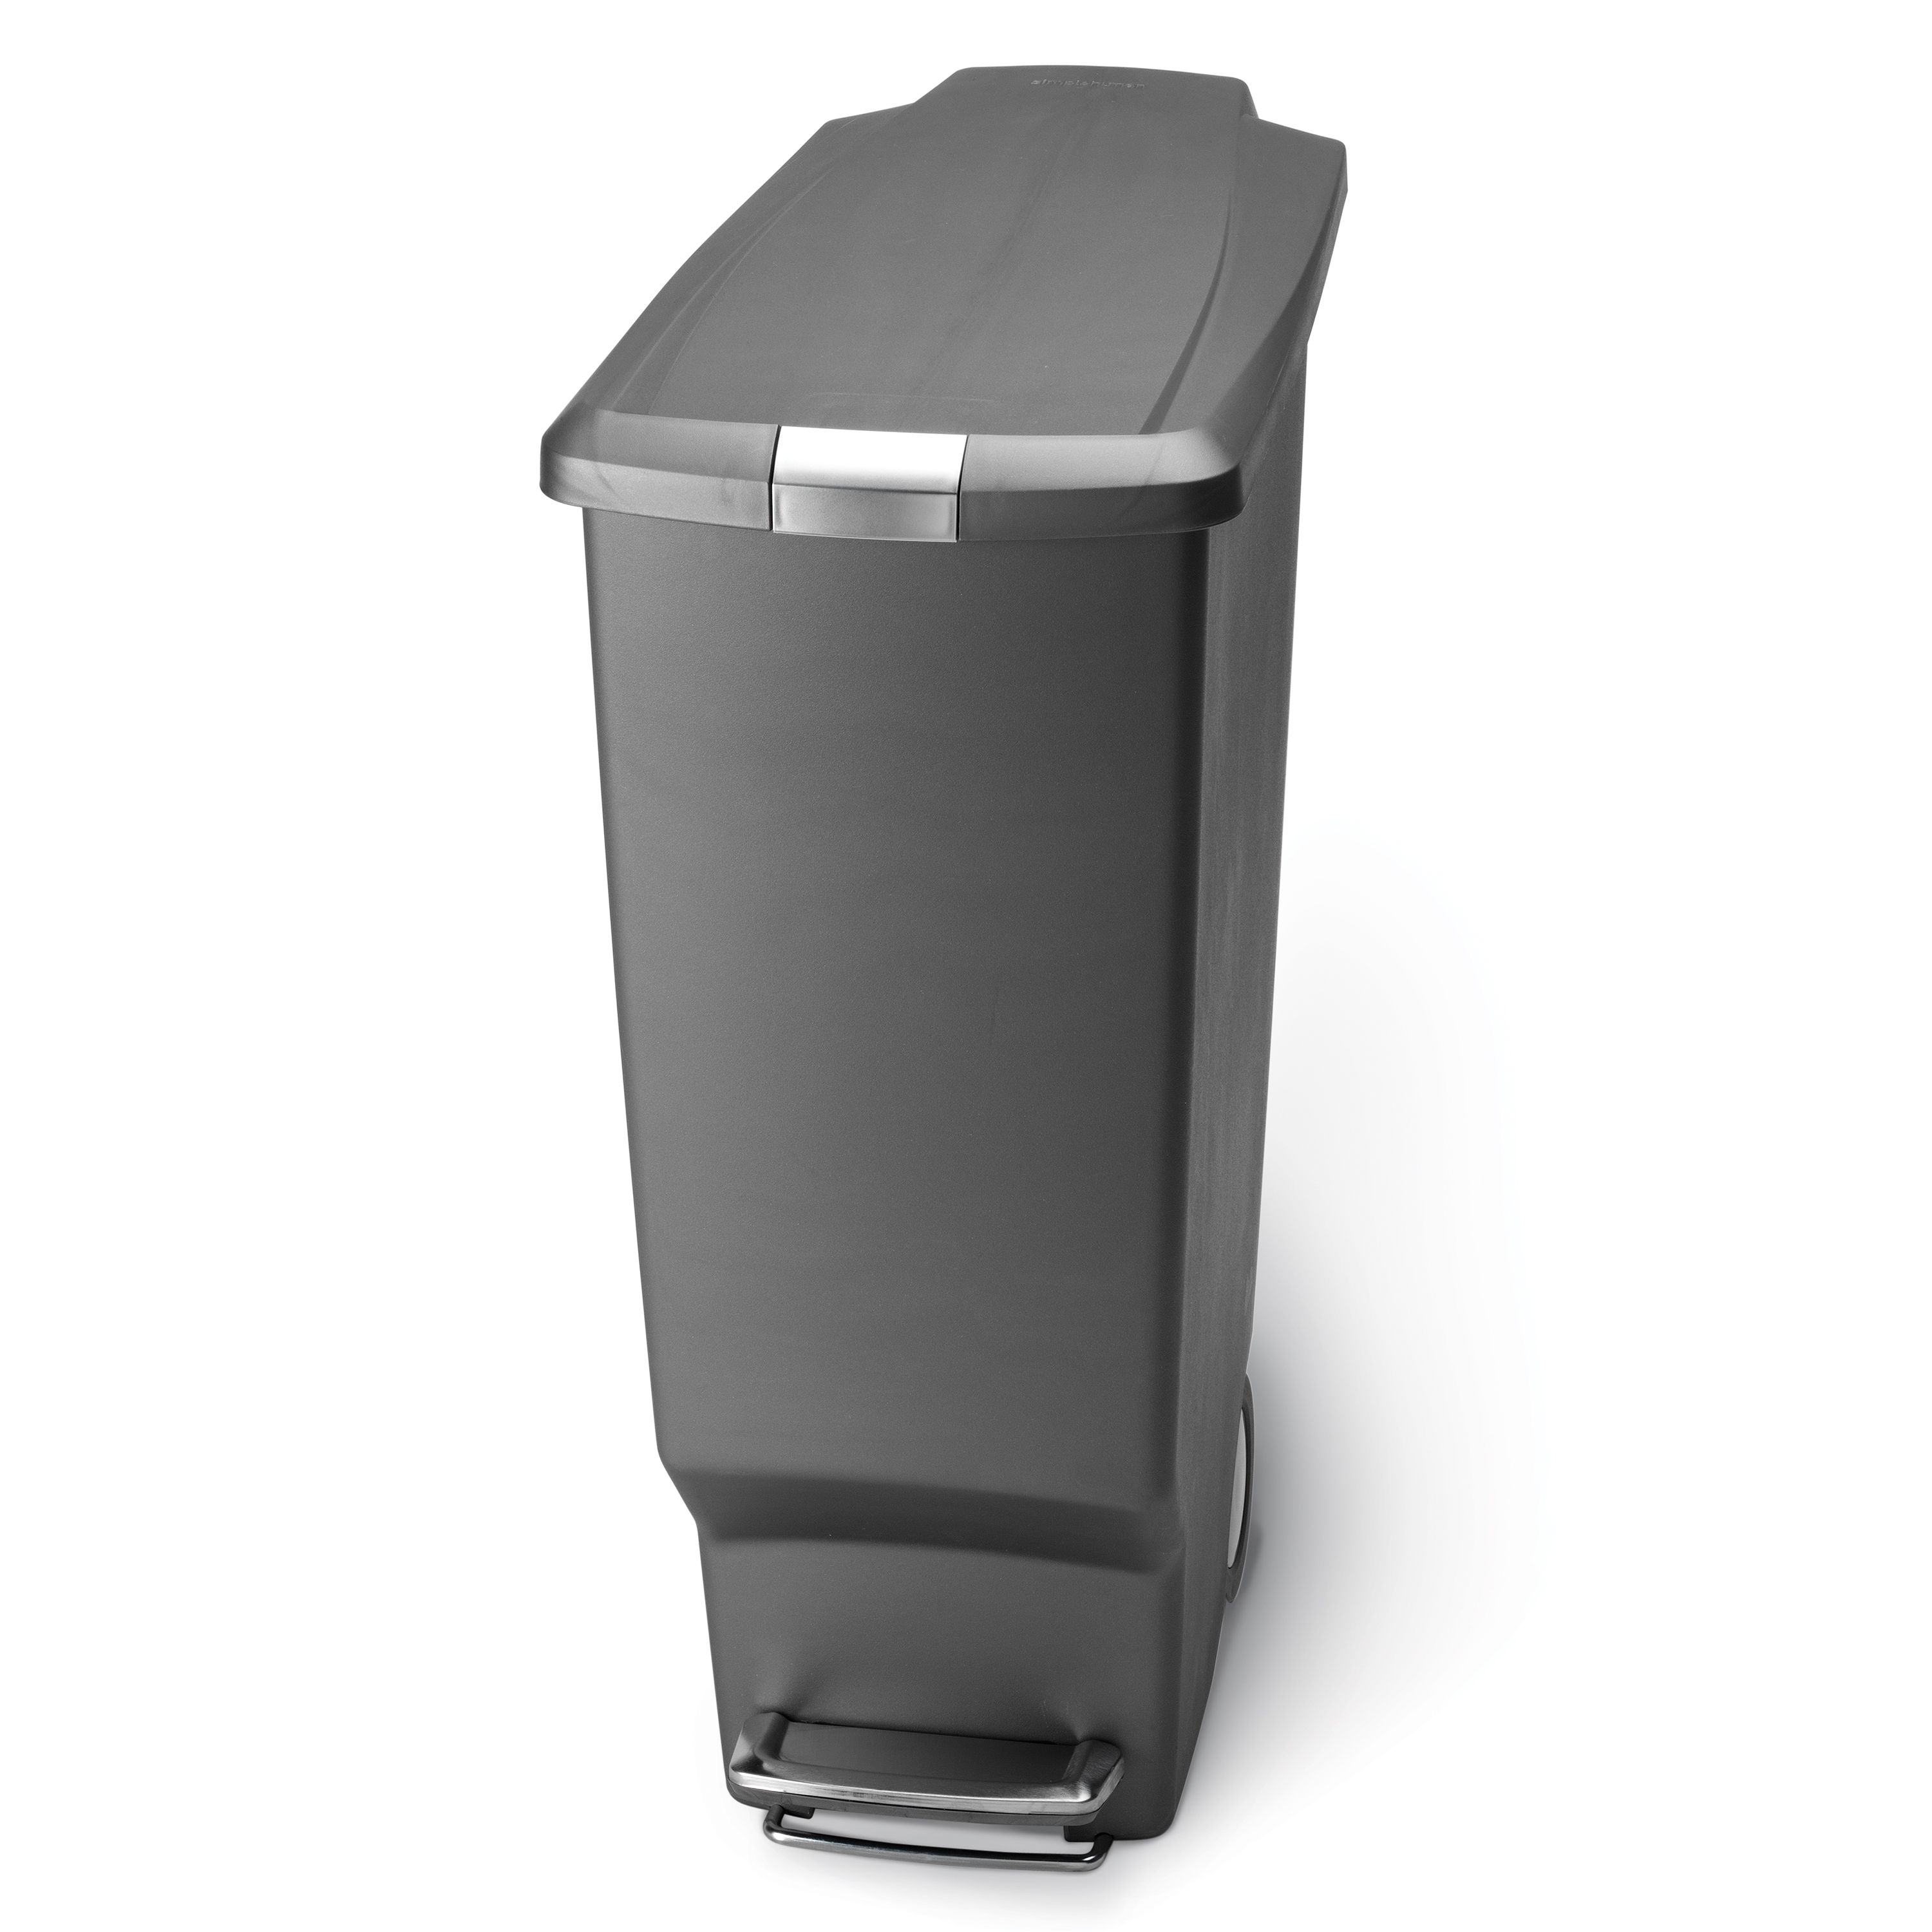 Home Kitchen Trash Cans Plastic Bins Garbage Can